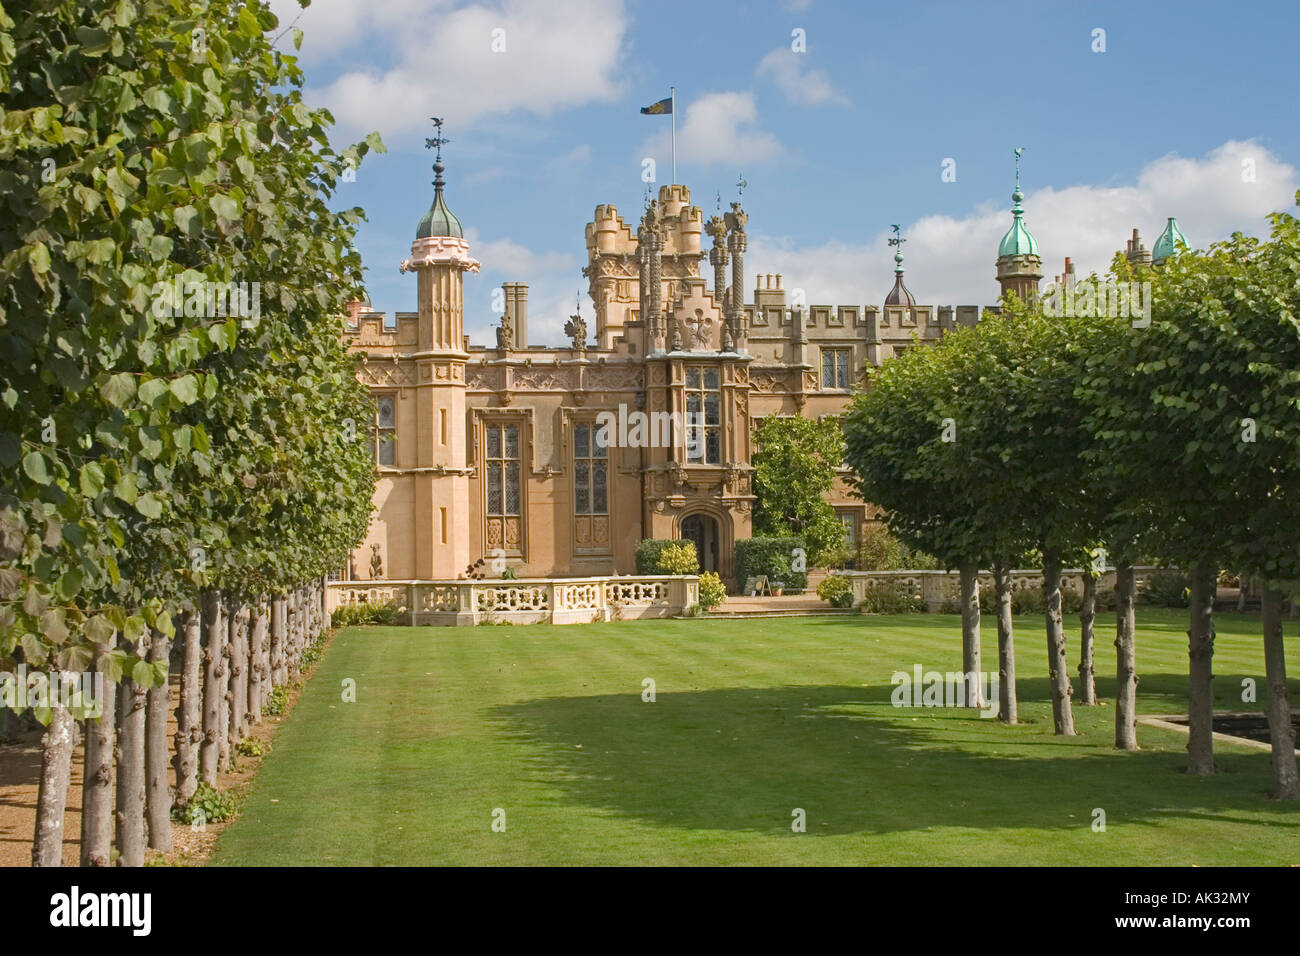 Knebworth House, a stately home in the english county of Hertfordshire, and gardens - Stock Image